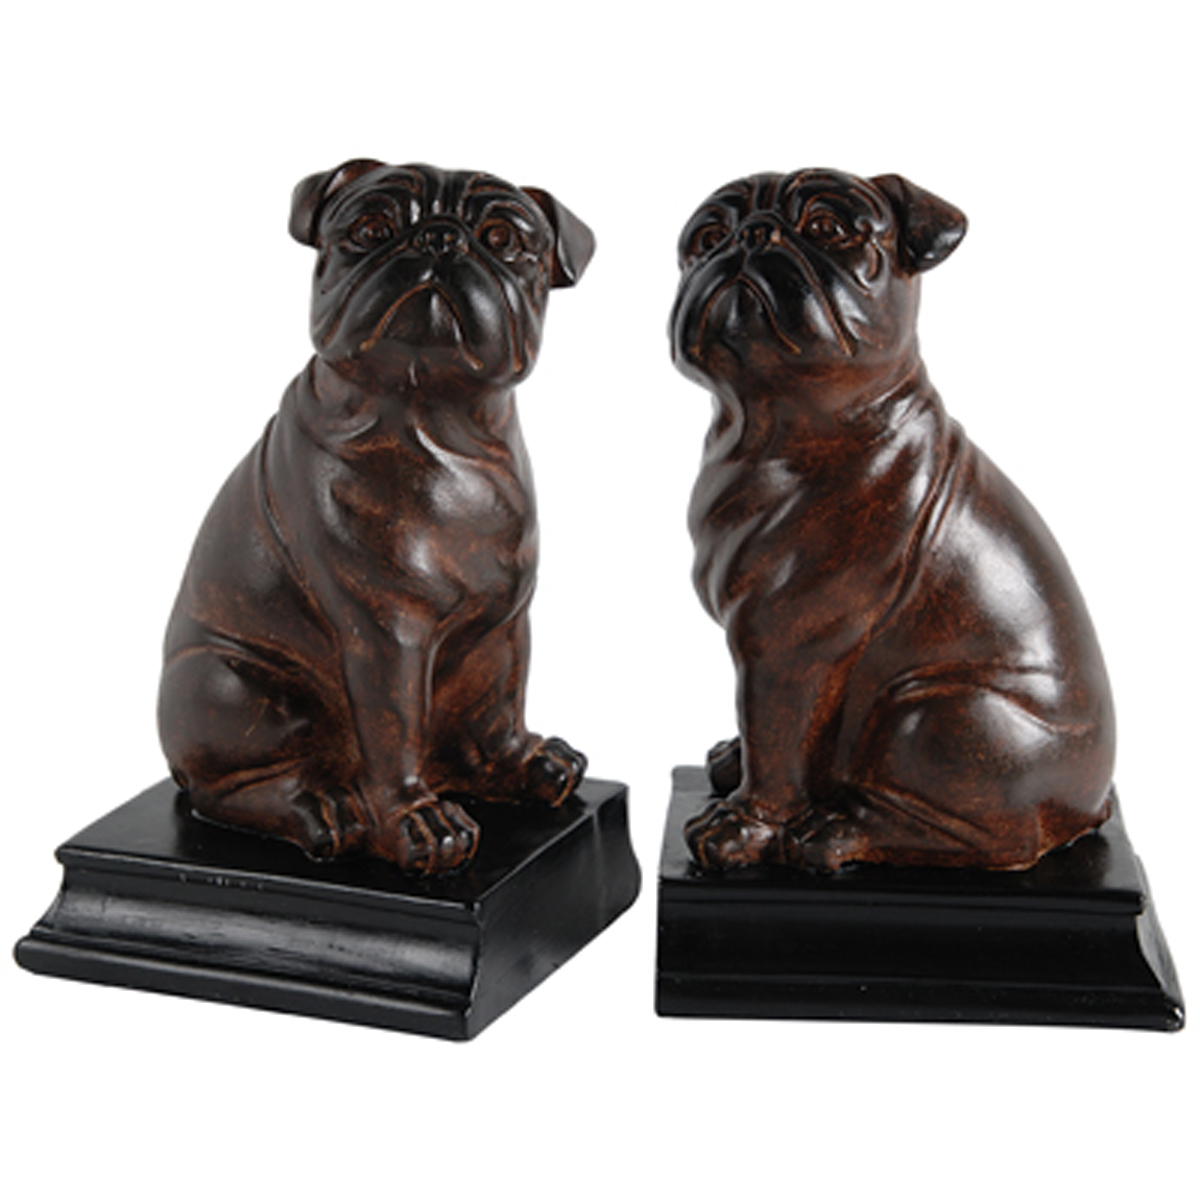 A&B Home Bull Dog Bookends, Set of 2 by A&B Home